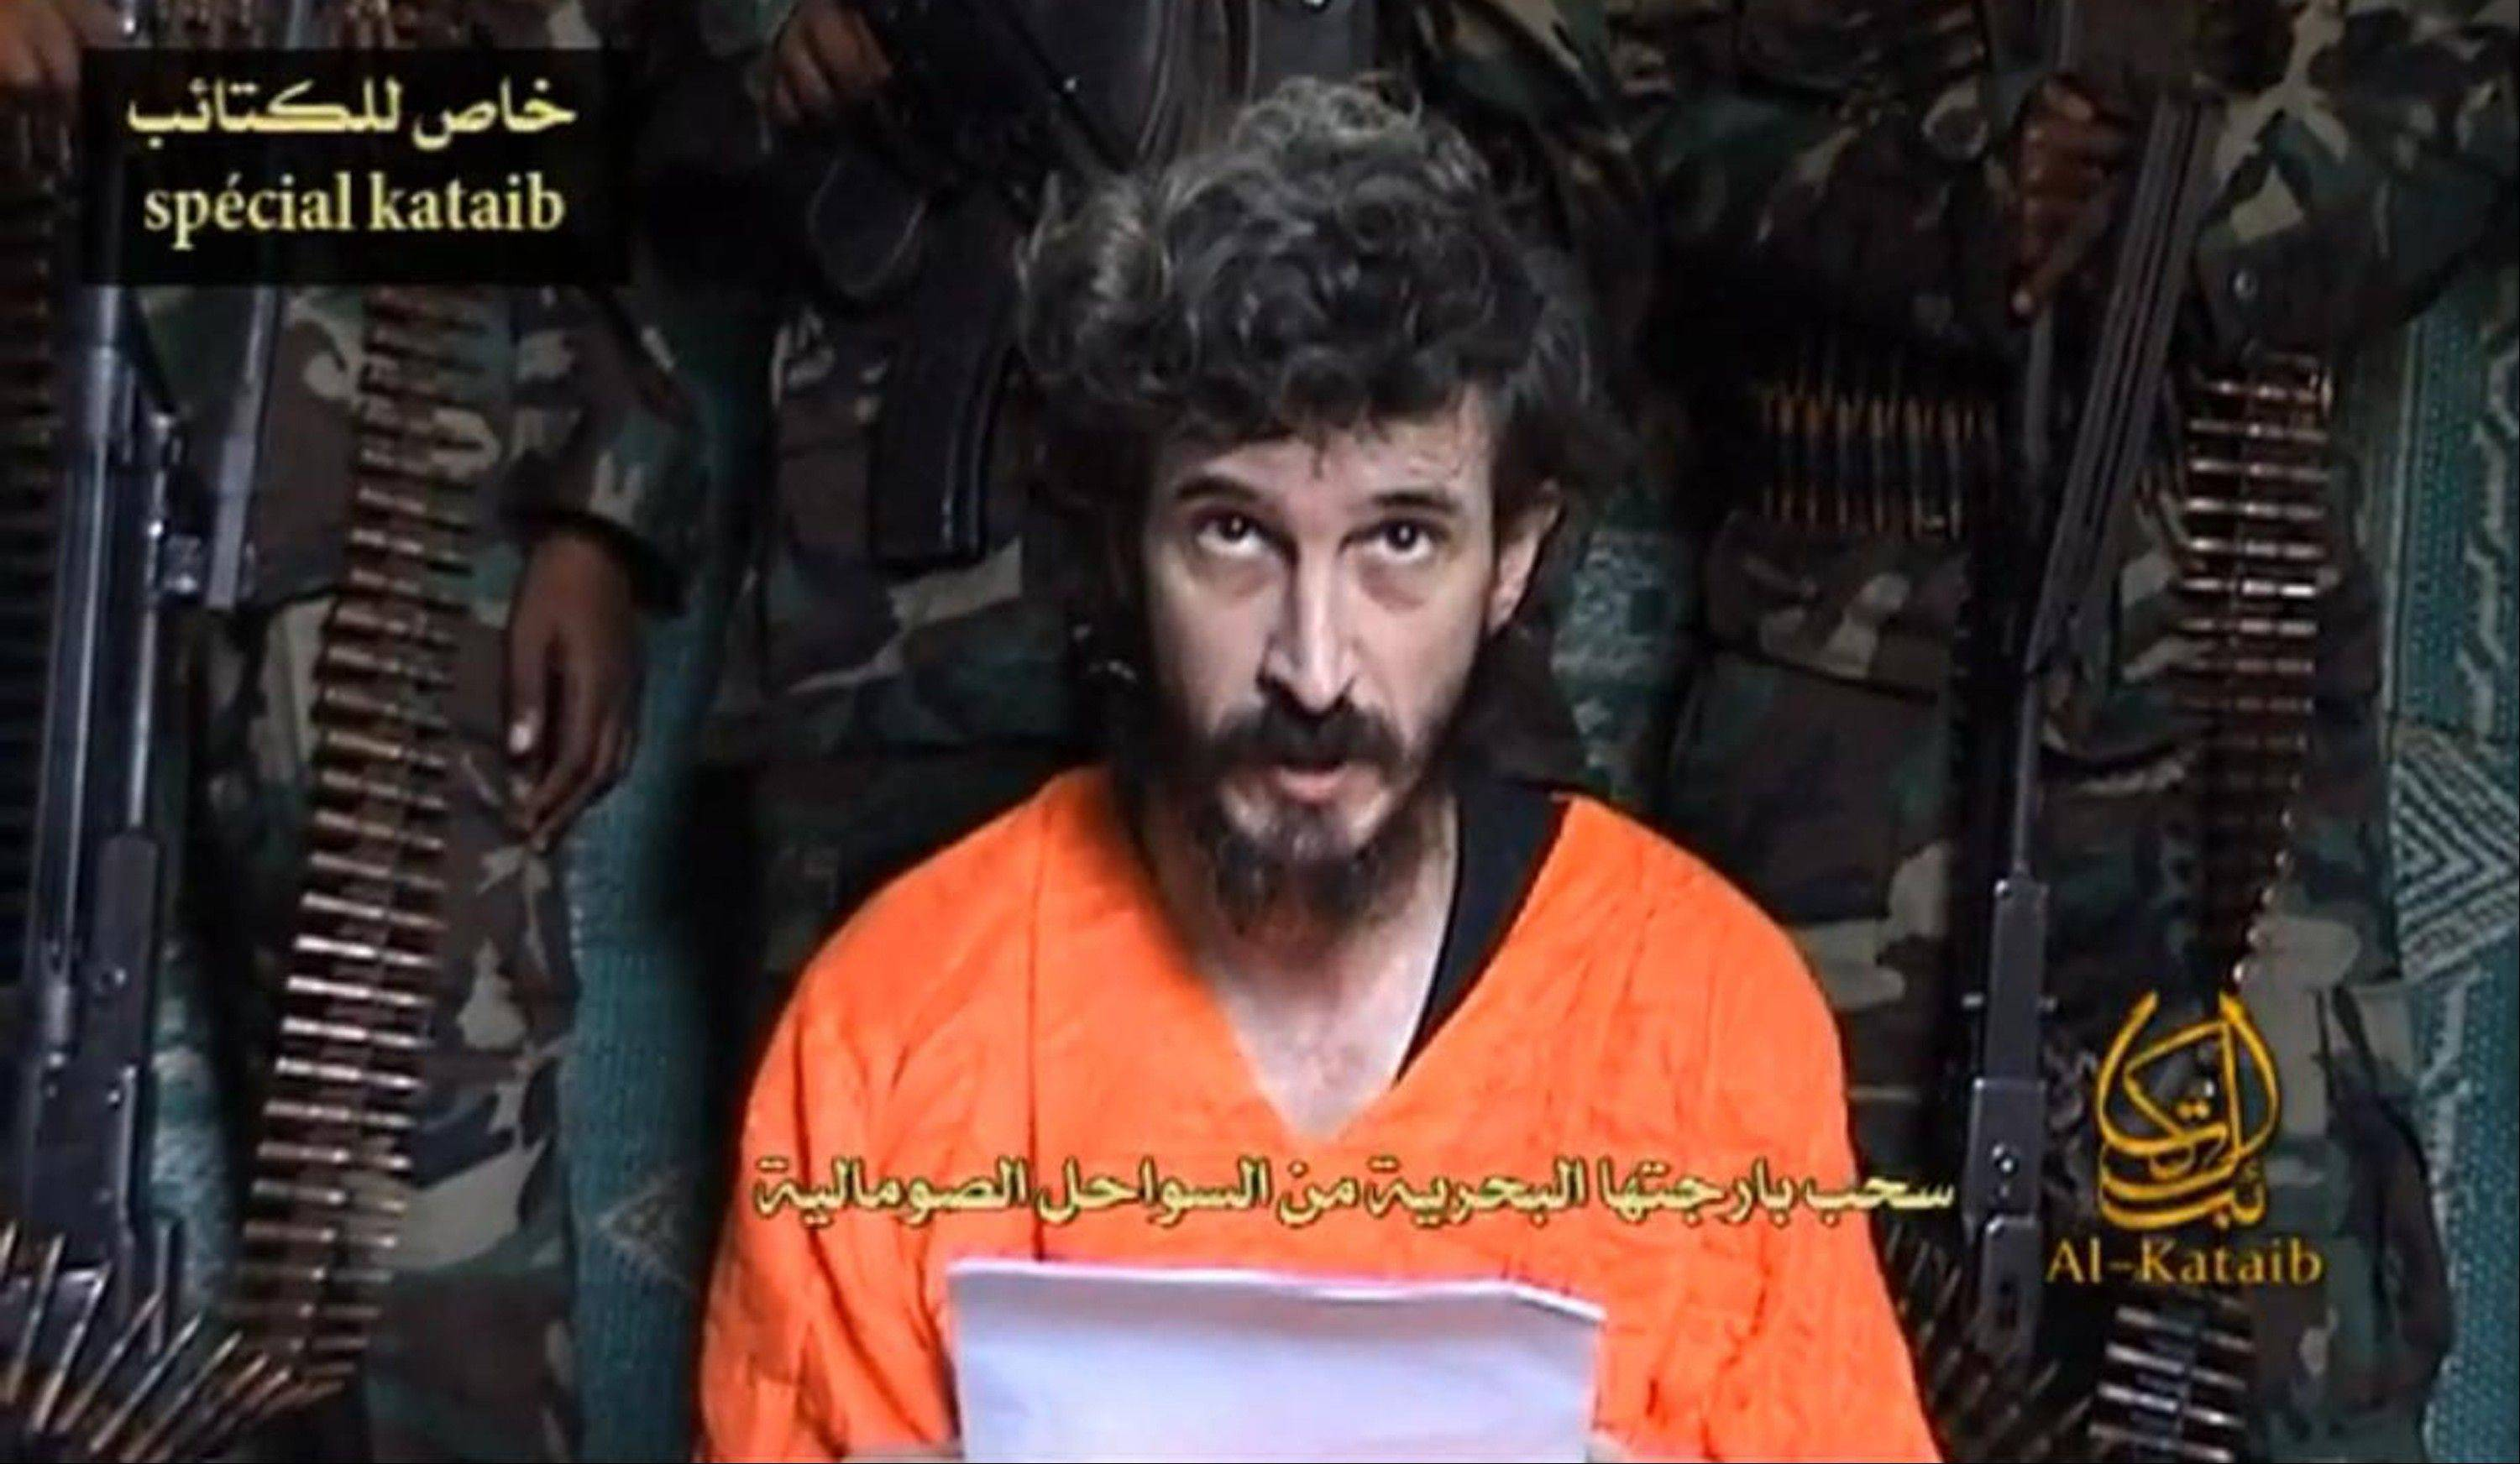 Associated Press/June 9 2010A man identified as French security agent Denis Allex pleads for his release more than two years ago, from the Somali militant group al-Shabaab.